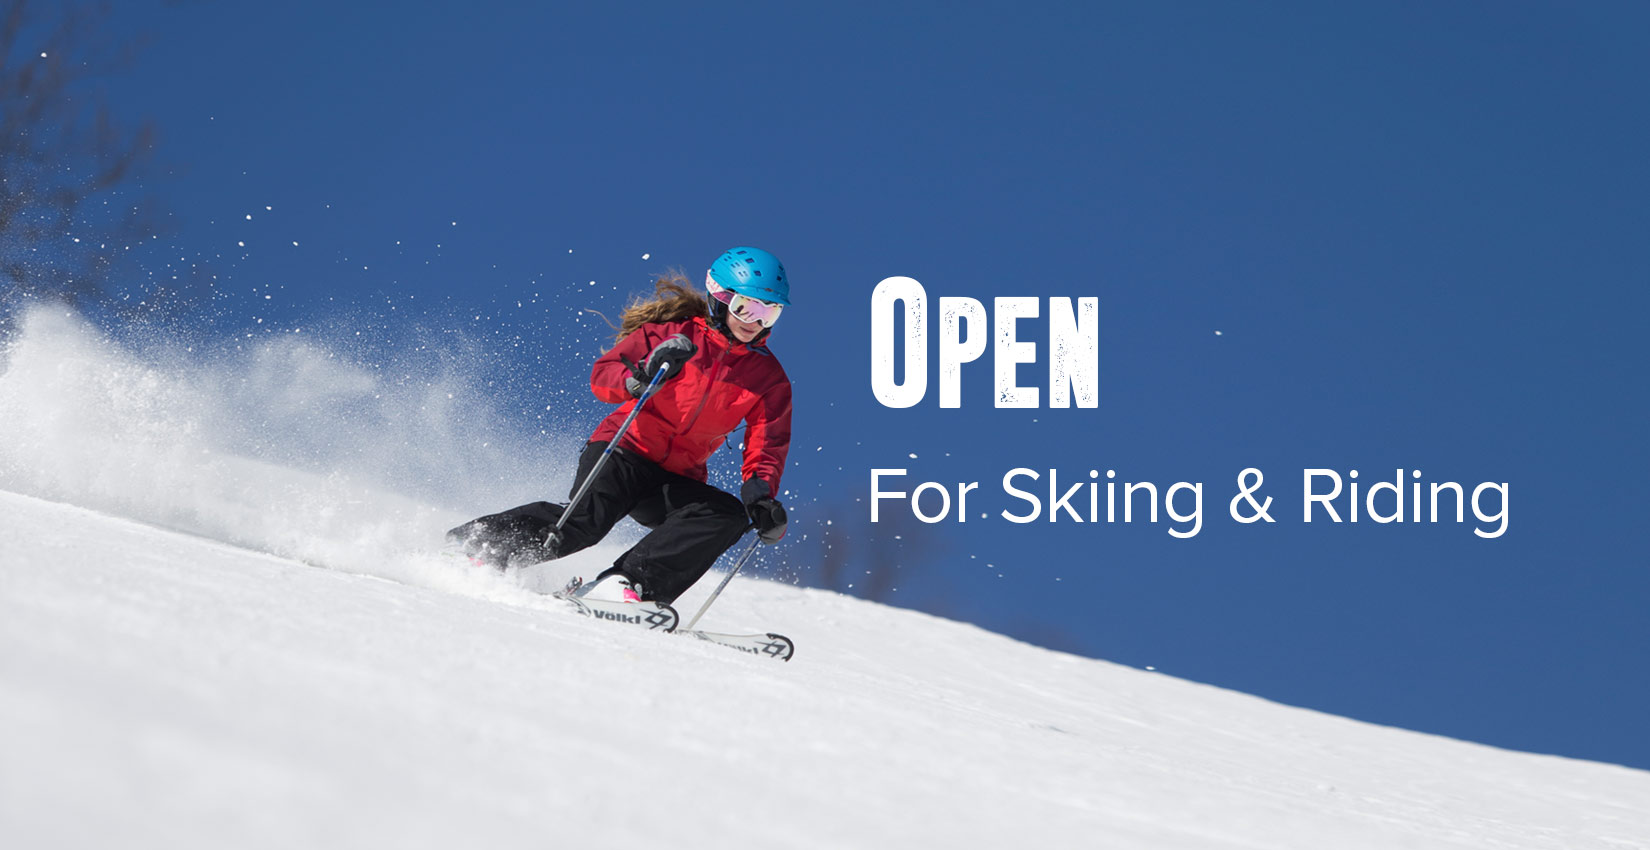 open for skiing and riding at wintergreen resort